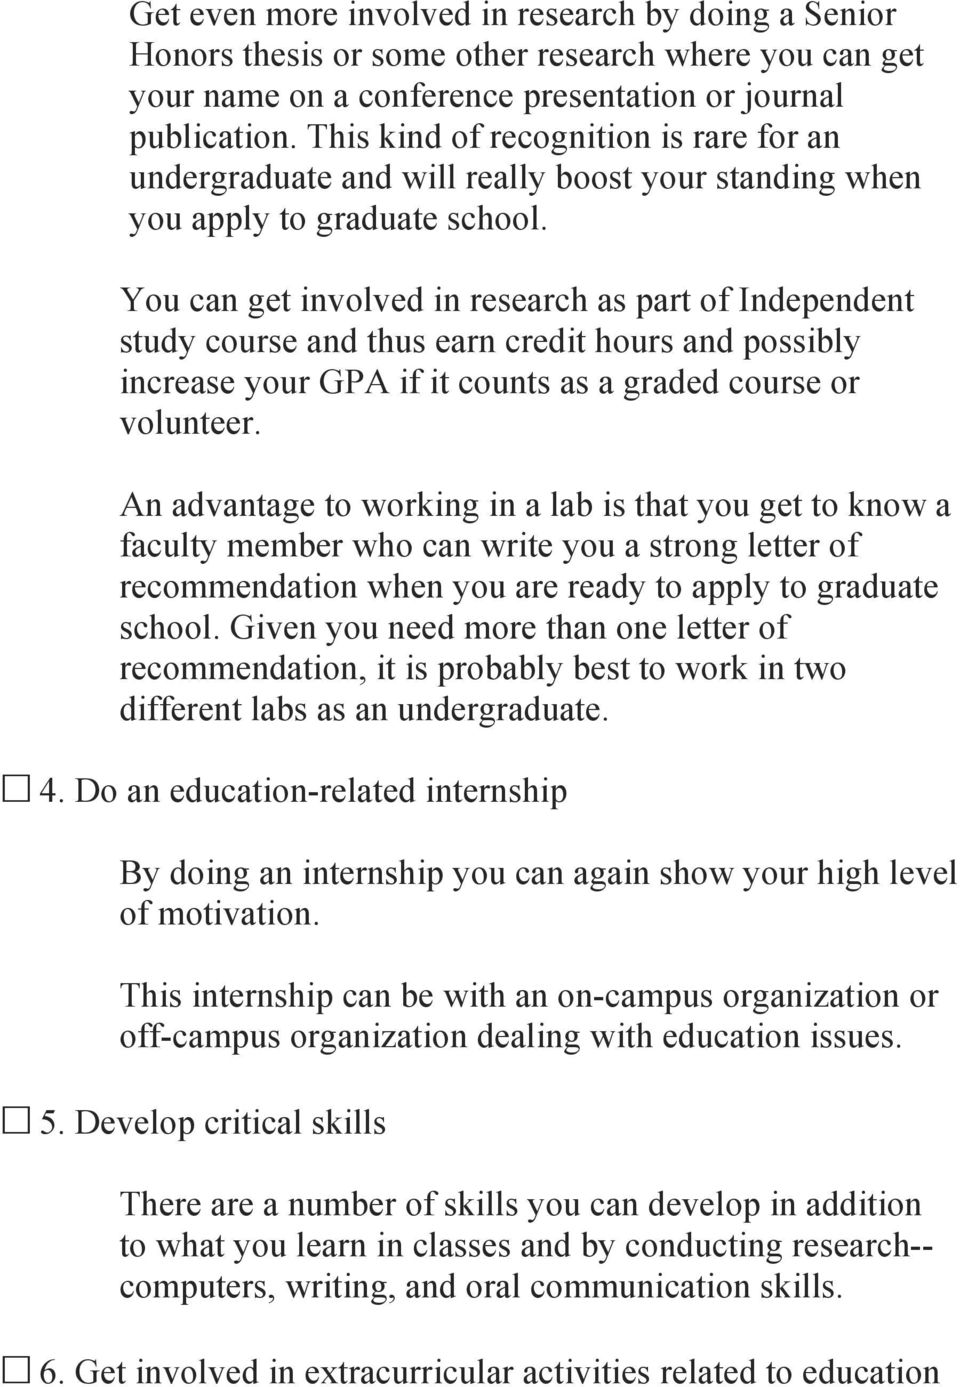 You can get involved in research as part of Independent study course and thus earn credit hours and possibly increase your GPA if it counts as a graded course or volunteer.